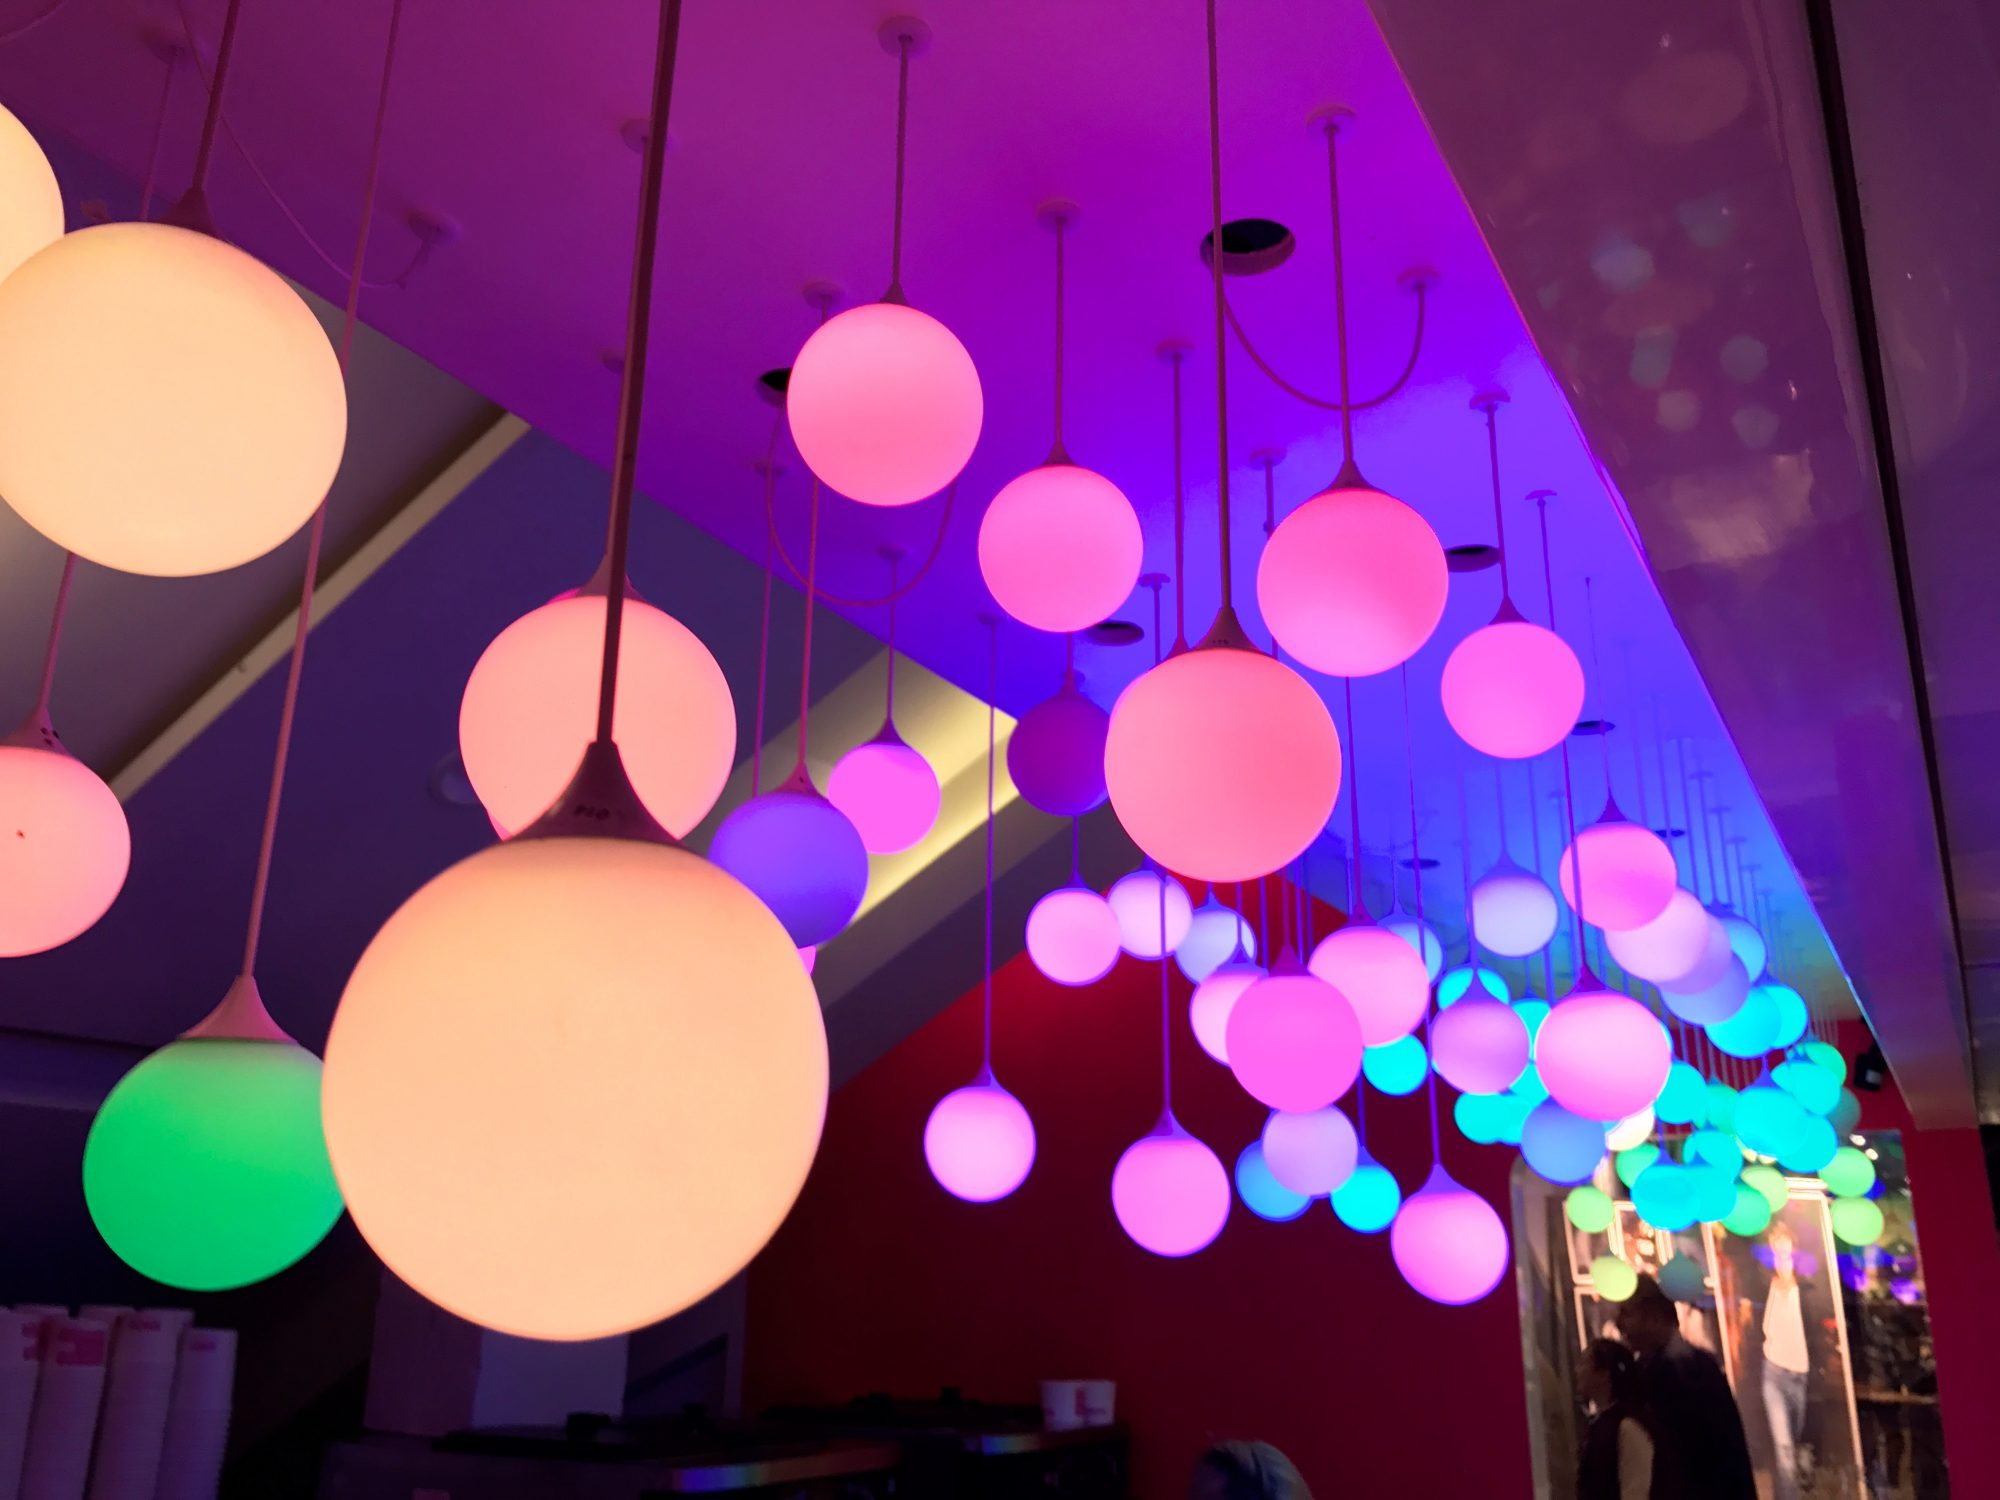 Coloured lights hanging from the ceiling